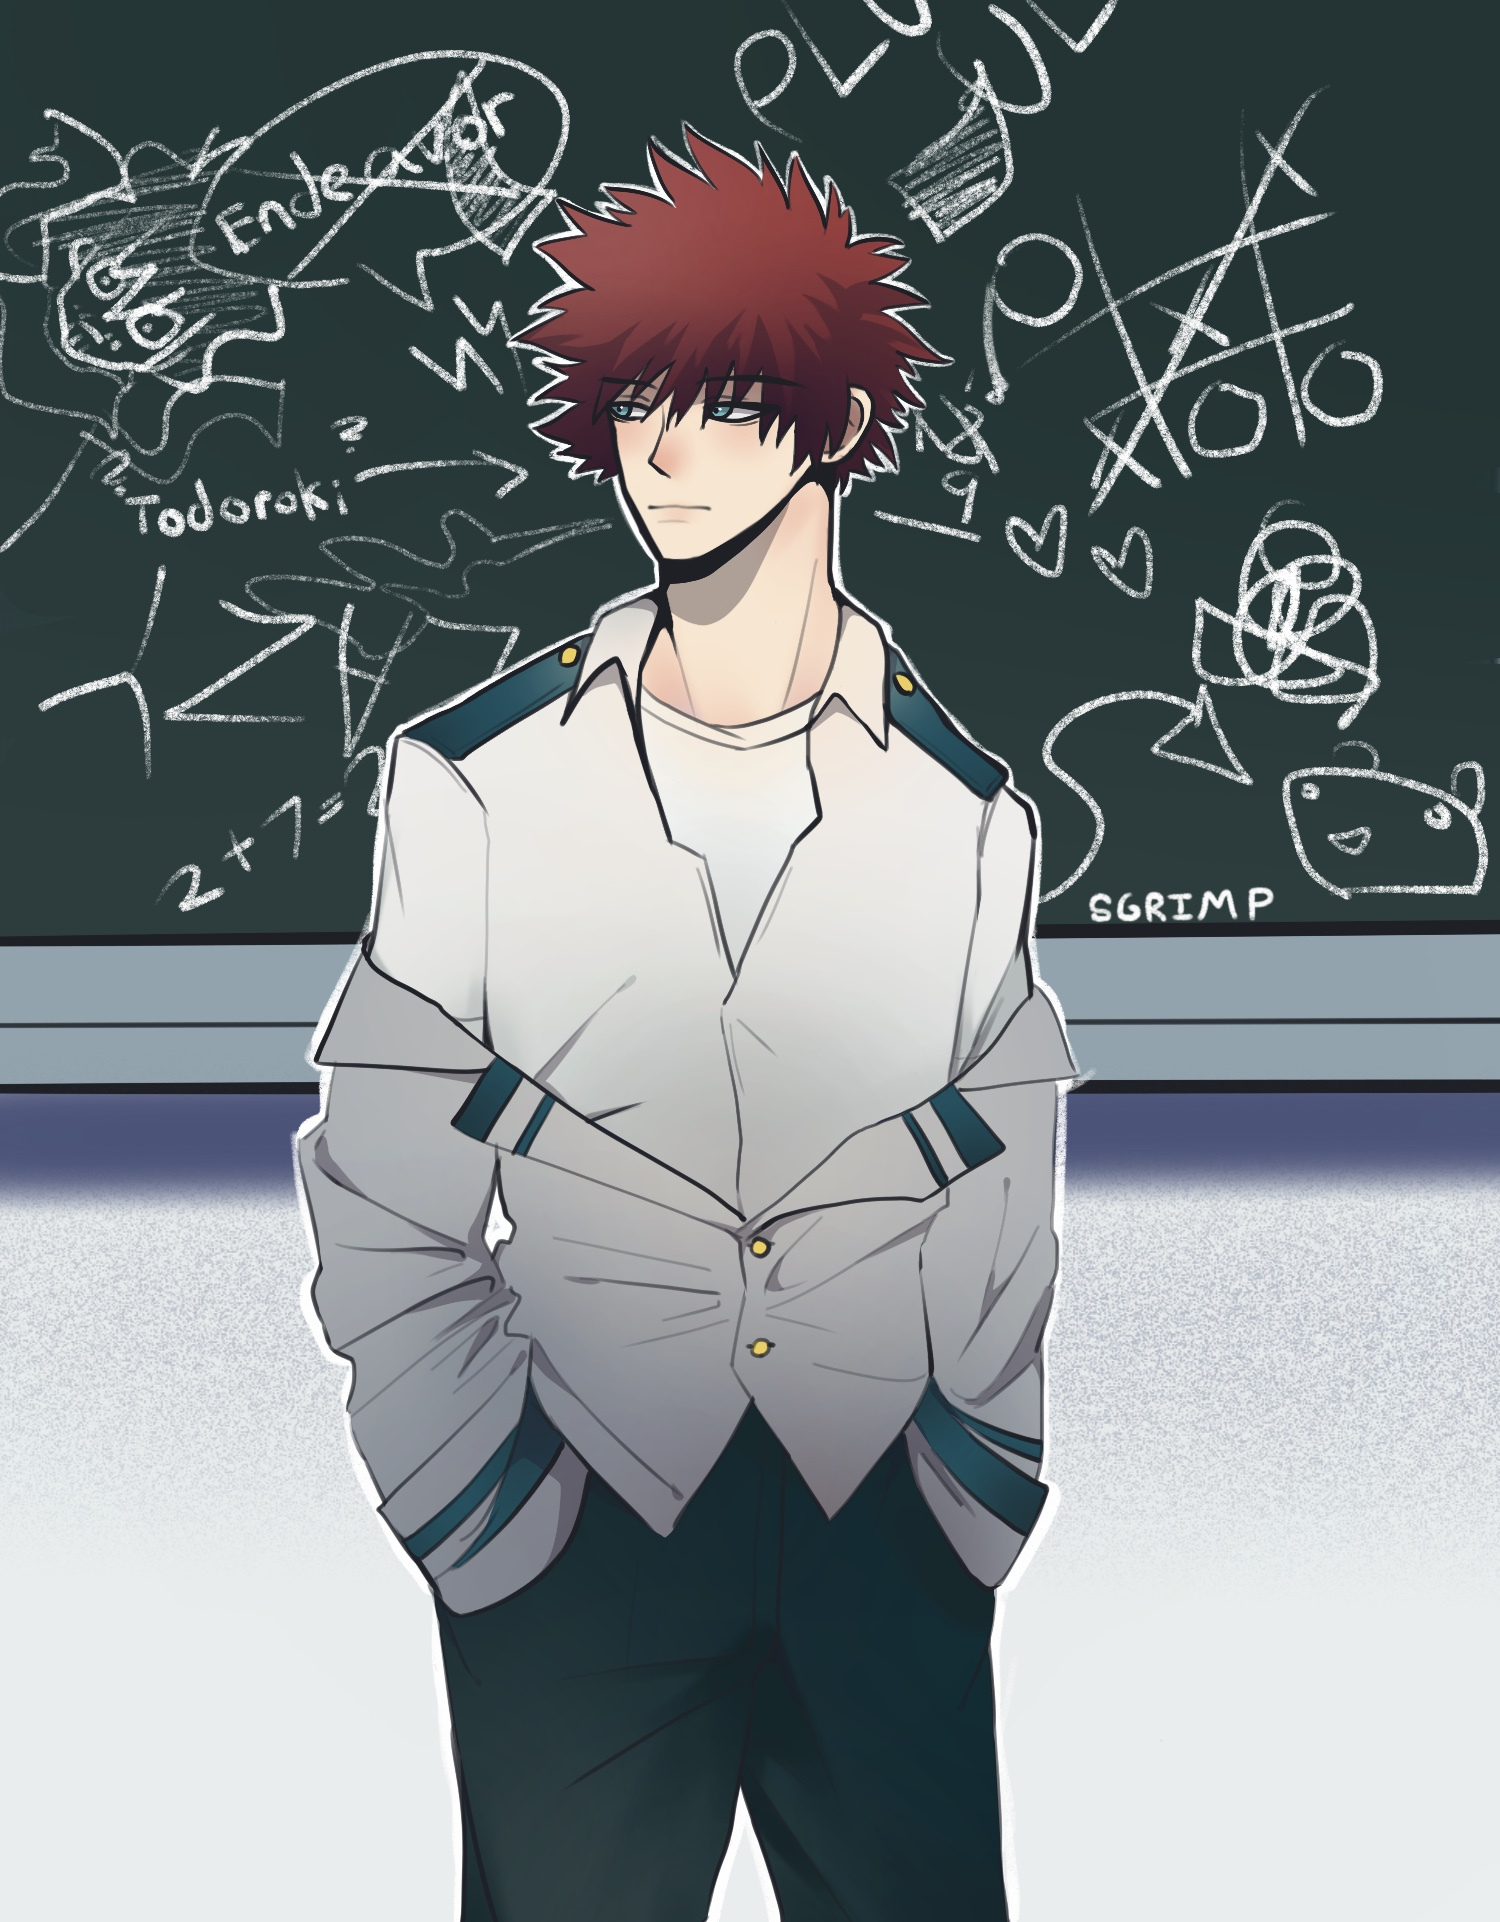 Dabi Touya Todoroki Hero Au Mha Fanart By Sgrimp On Deviantart